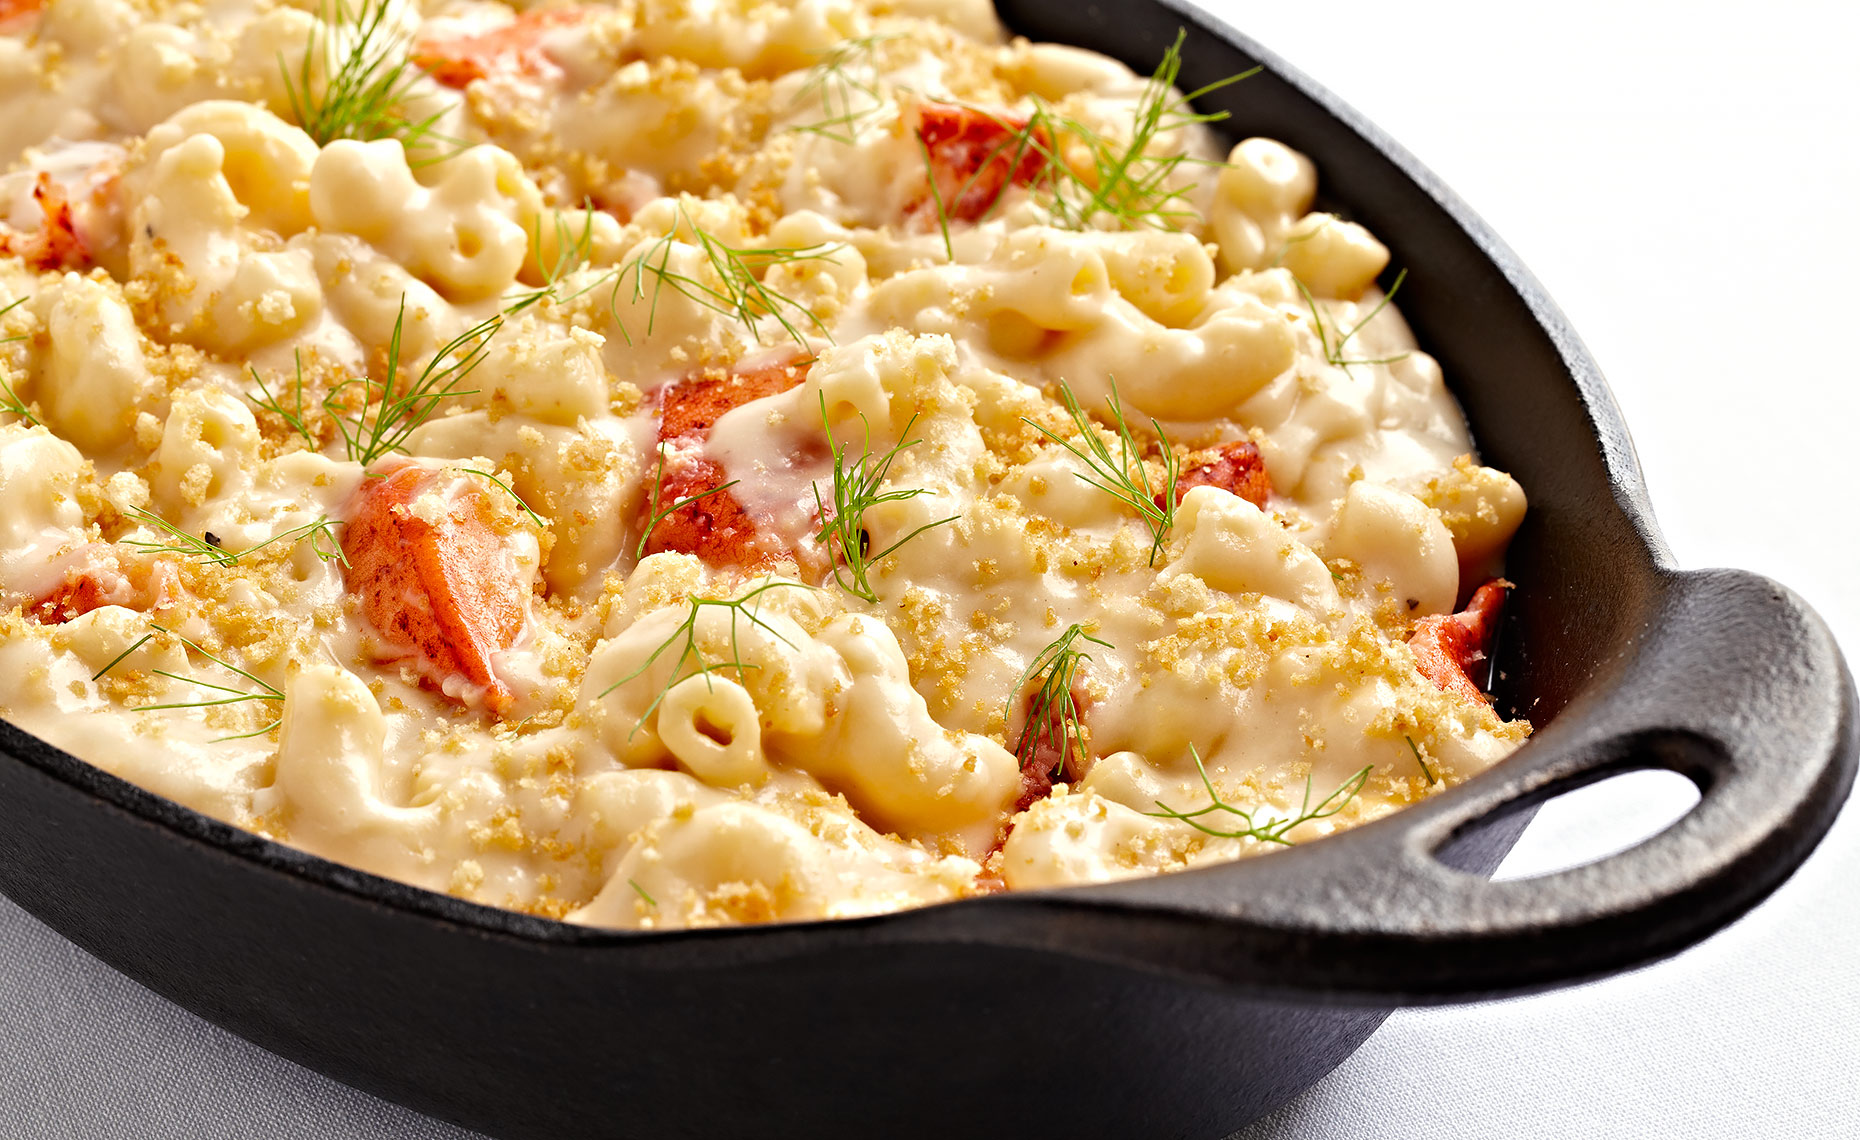 FOOD-Comfort9-Ridgewells-Lobster-Mac